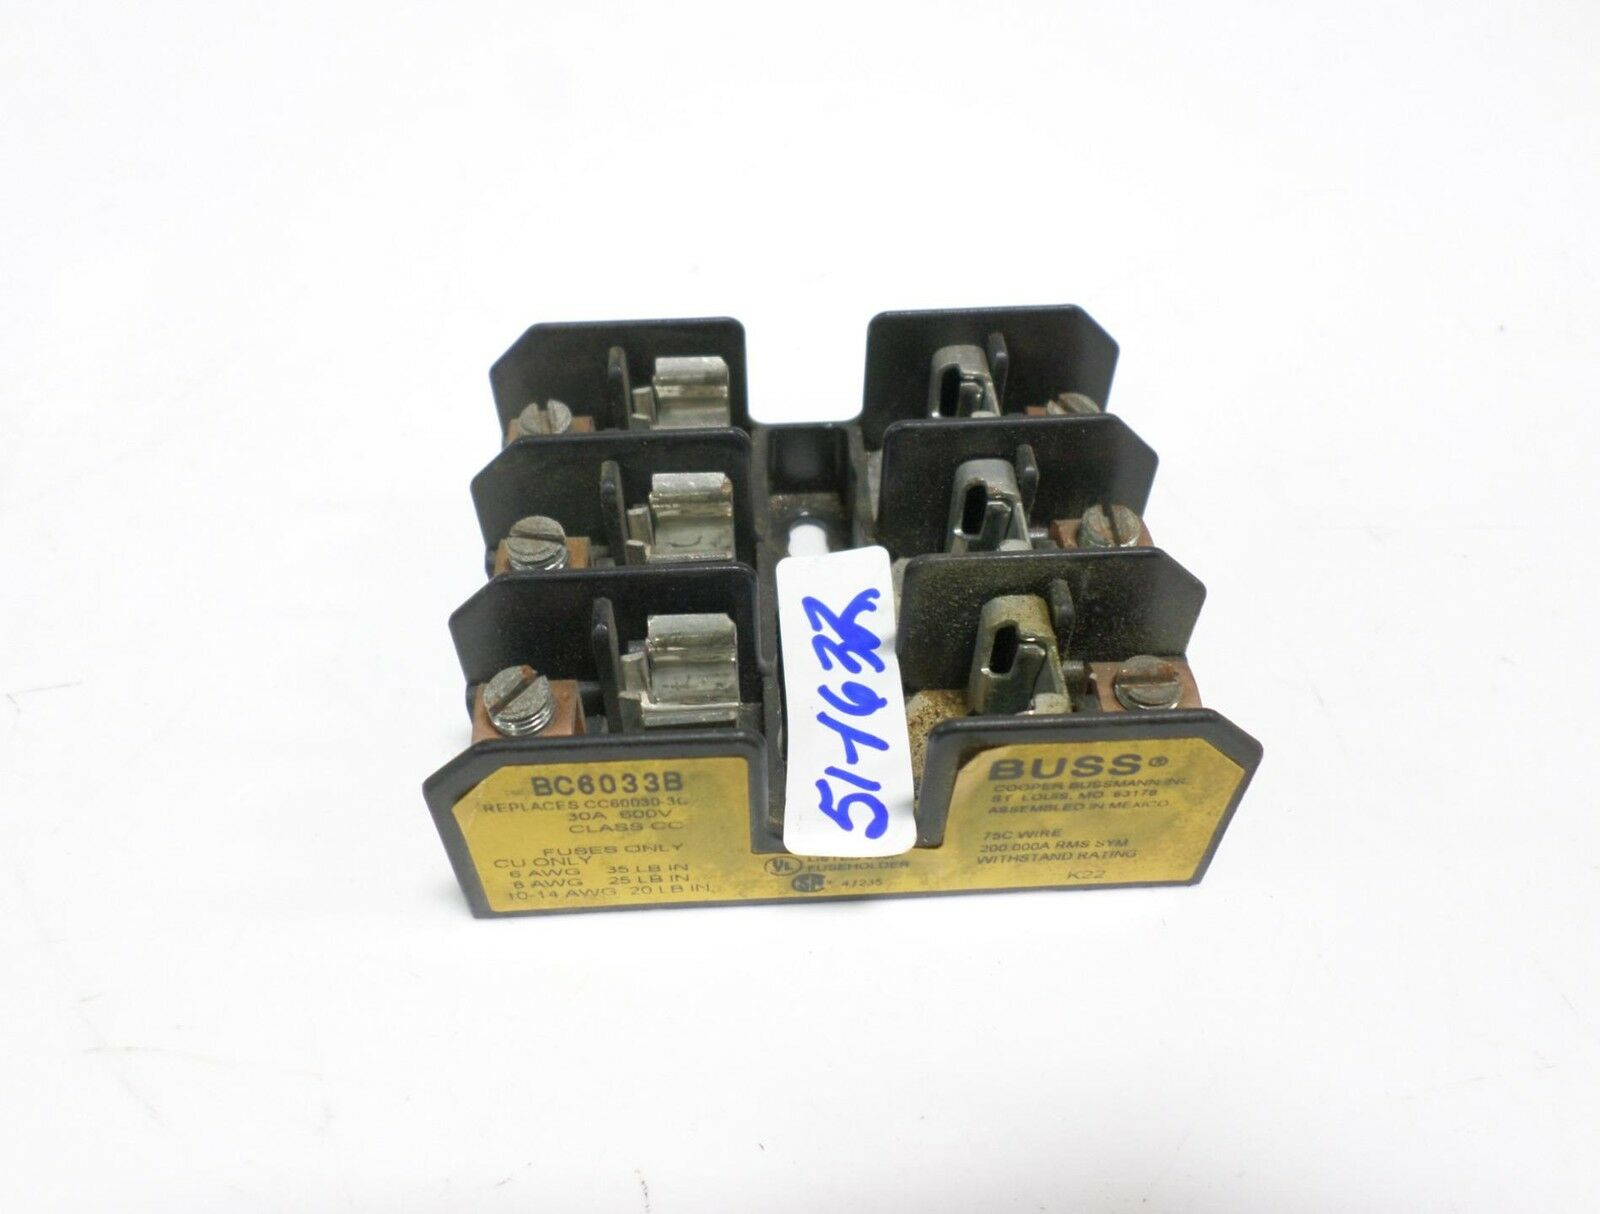 Cooper Bussmann 30a 600v 3p Fuse Block Bc6033b 2995 Picclick Buss Box 1 Of 1only Available